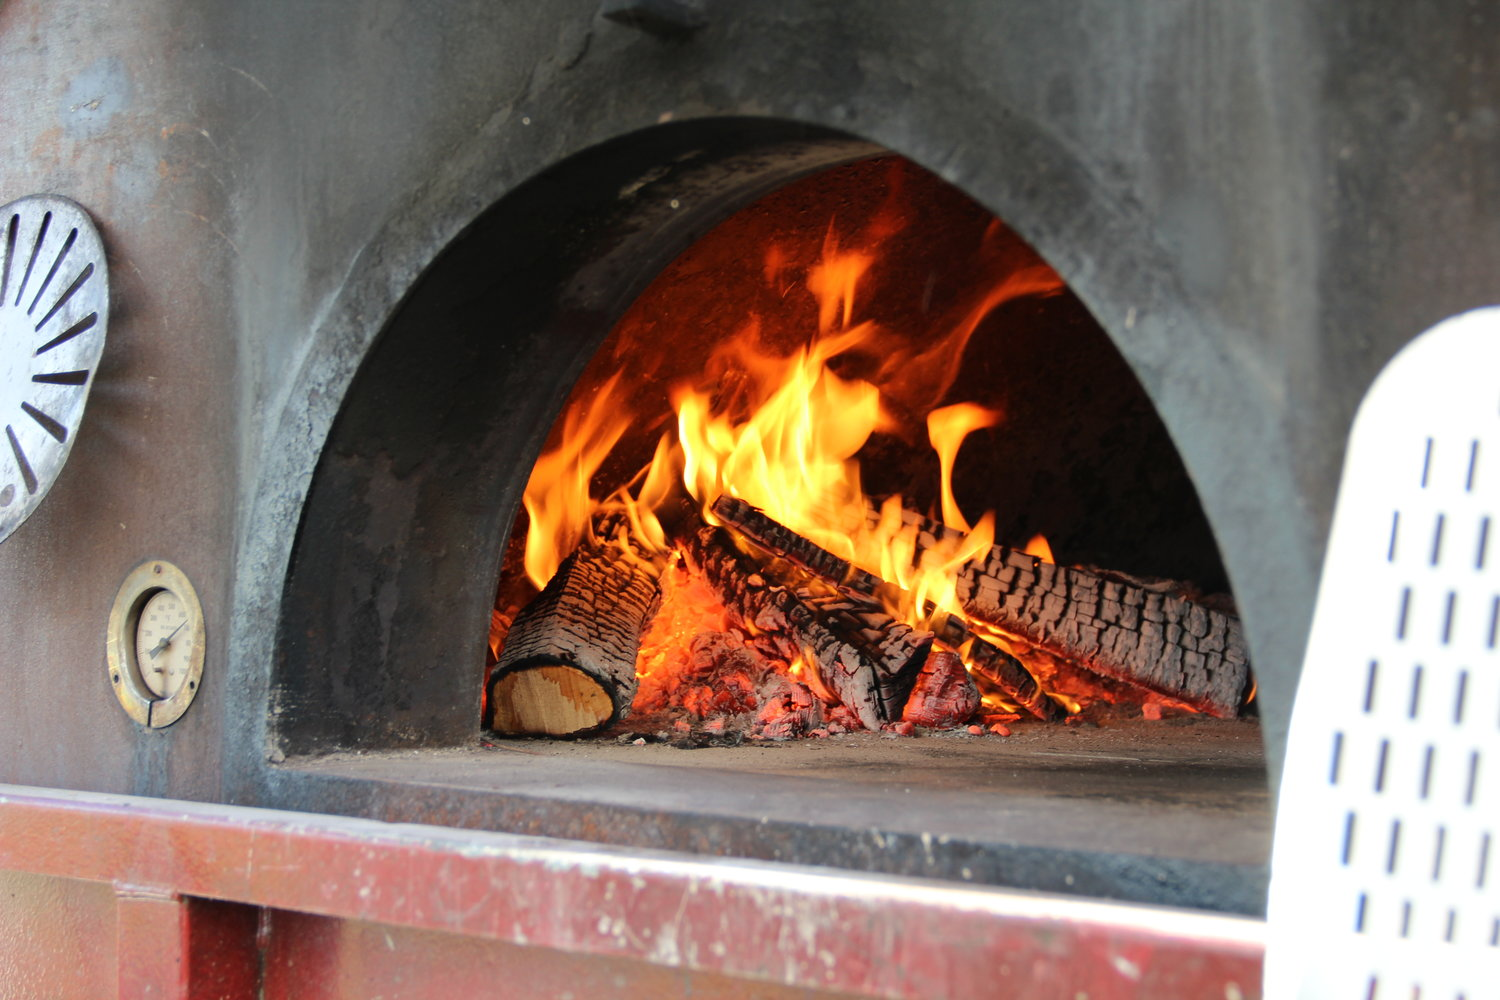 f0a8b323d9 Buy Custom Built Mobile Wood Fired Pizza Trailer Oven Start a Catering  Business.JPG